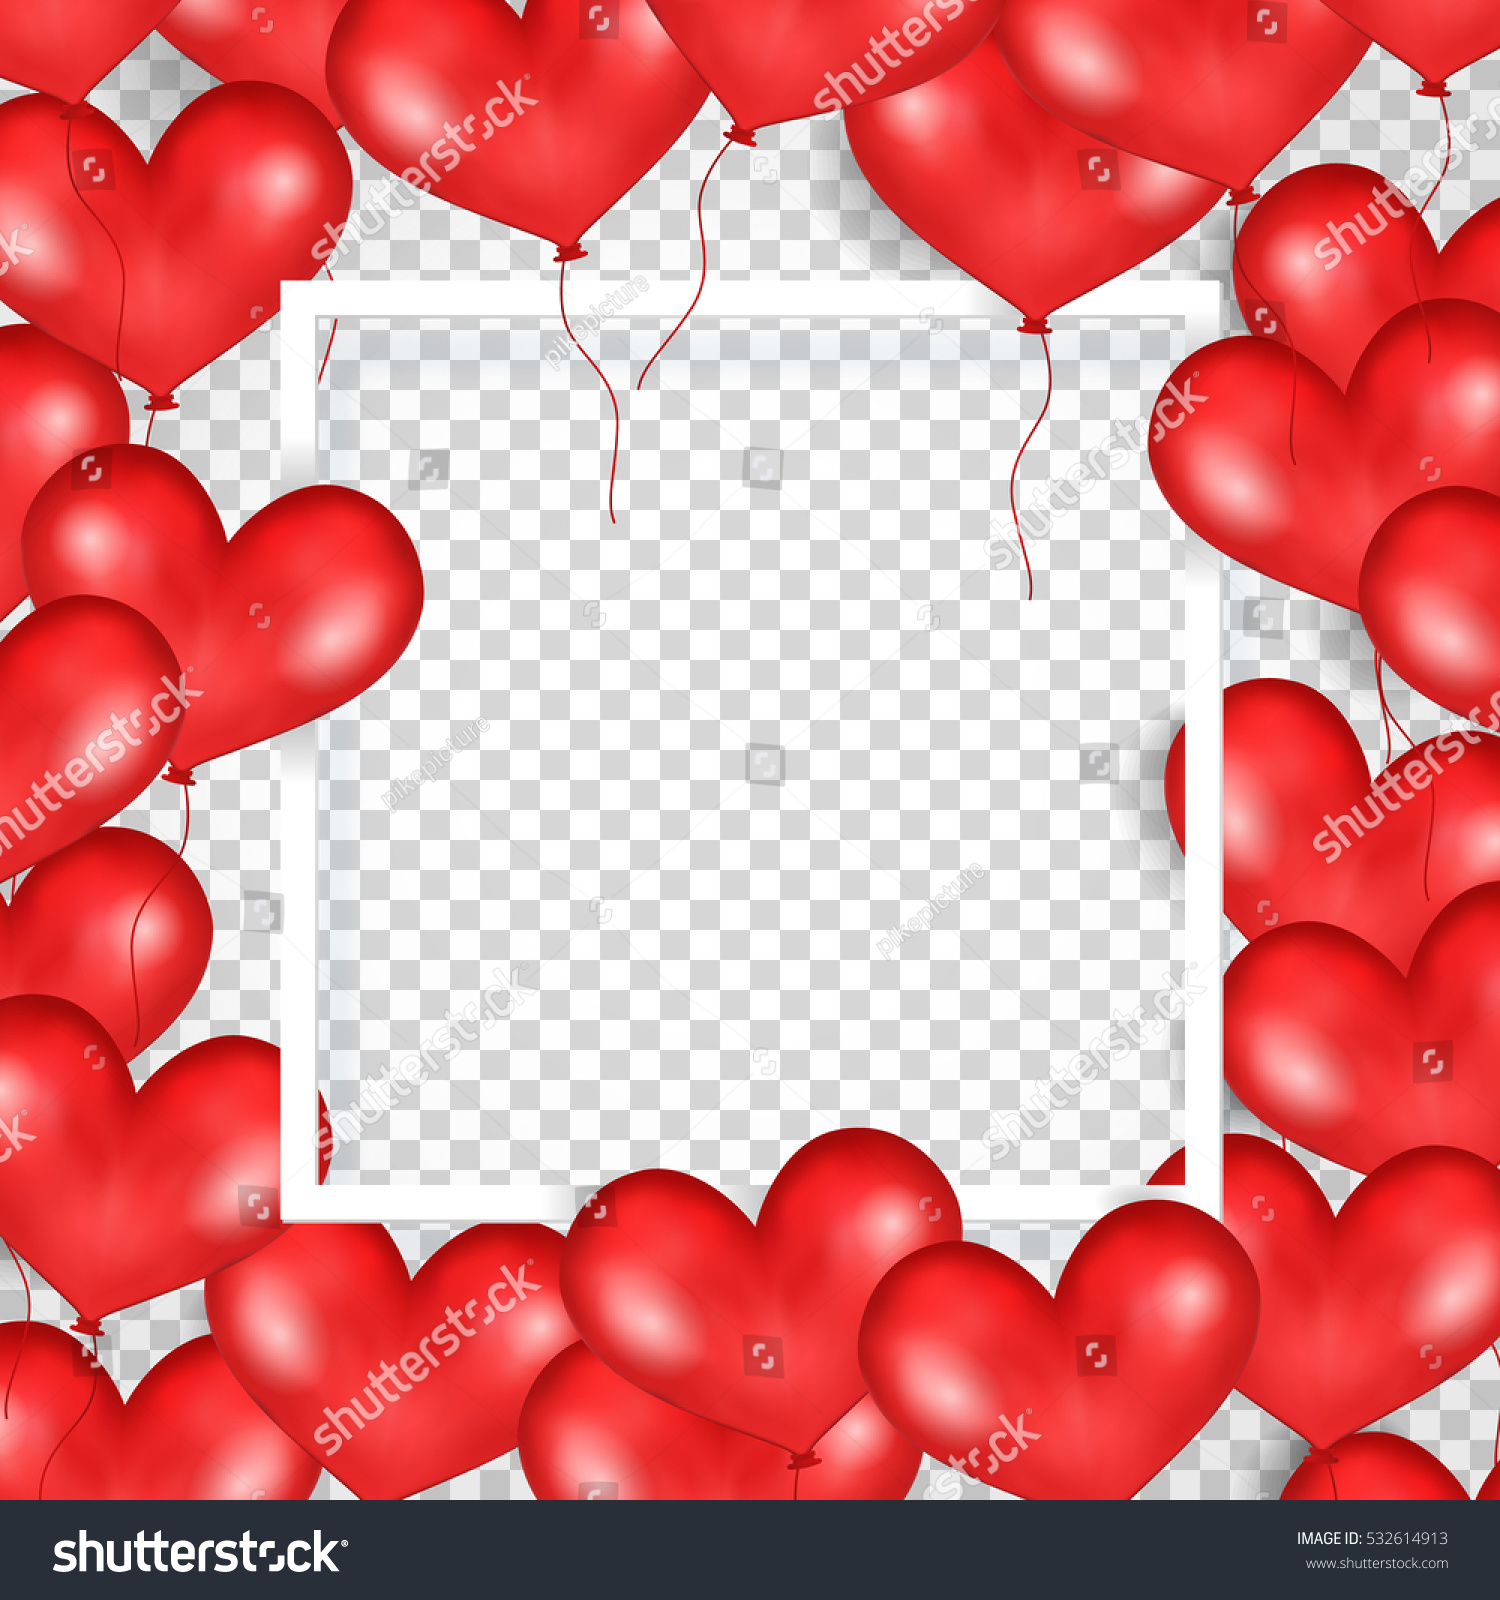 Frame Red Balloons Form Heart Transparent Stock Vector (Royalty Free ...